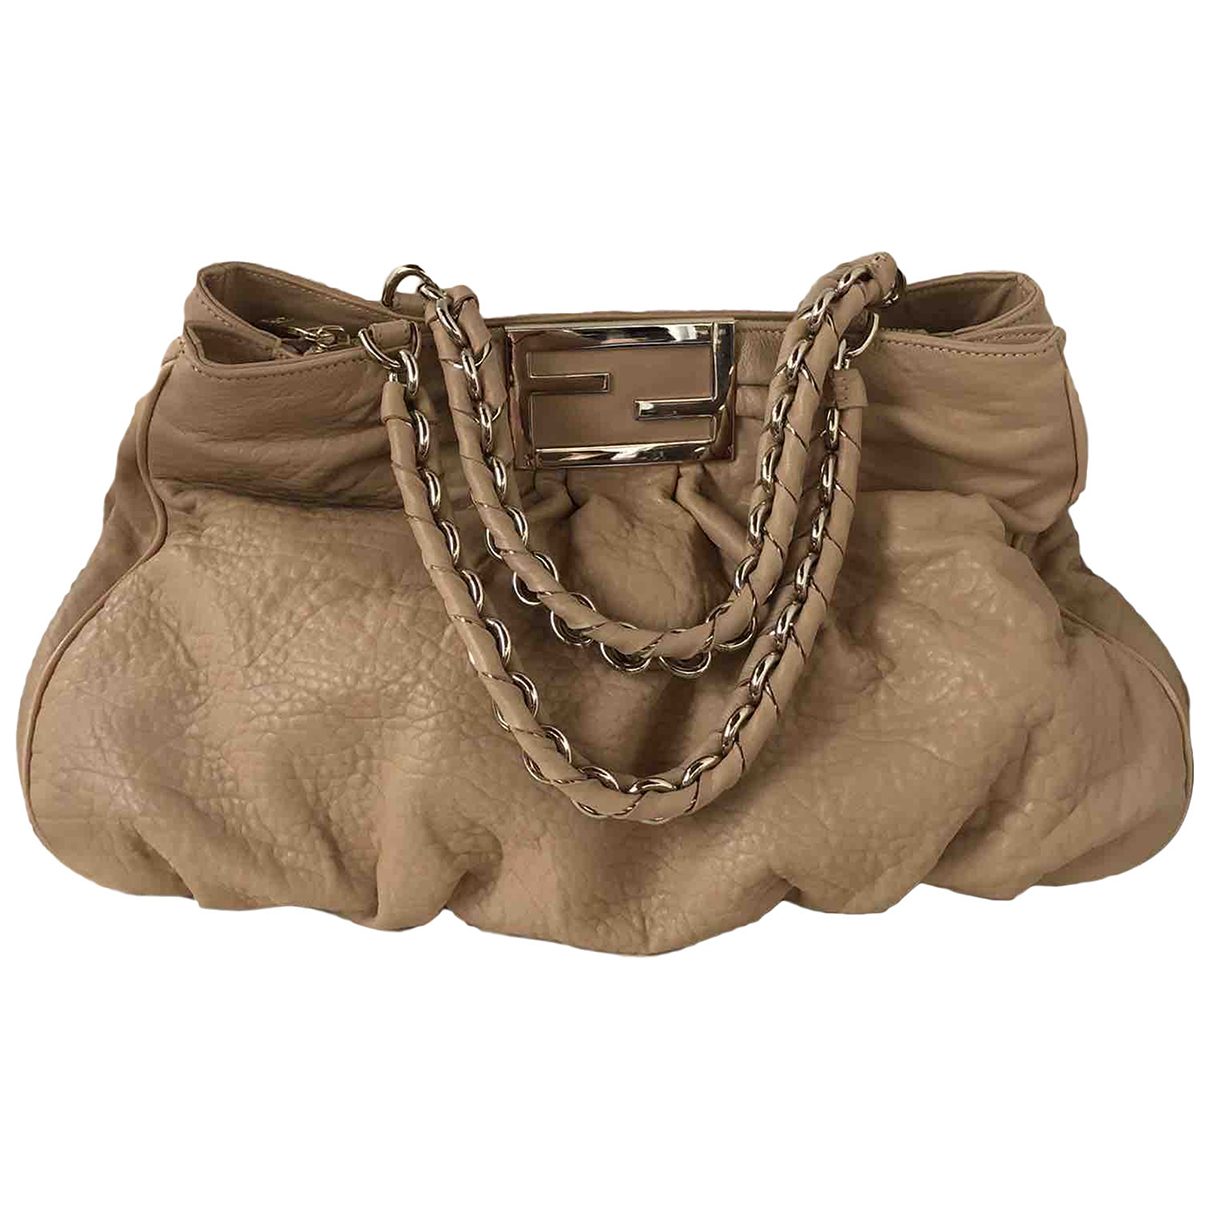 Fendi \N Beige Leather handbag for Women \N